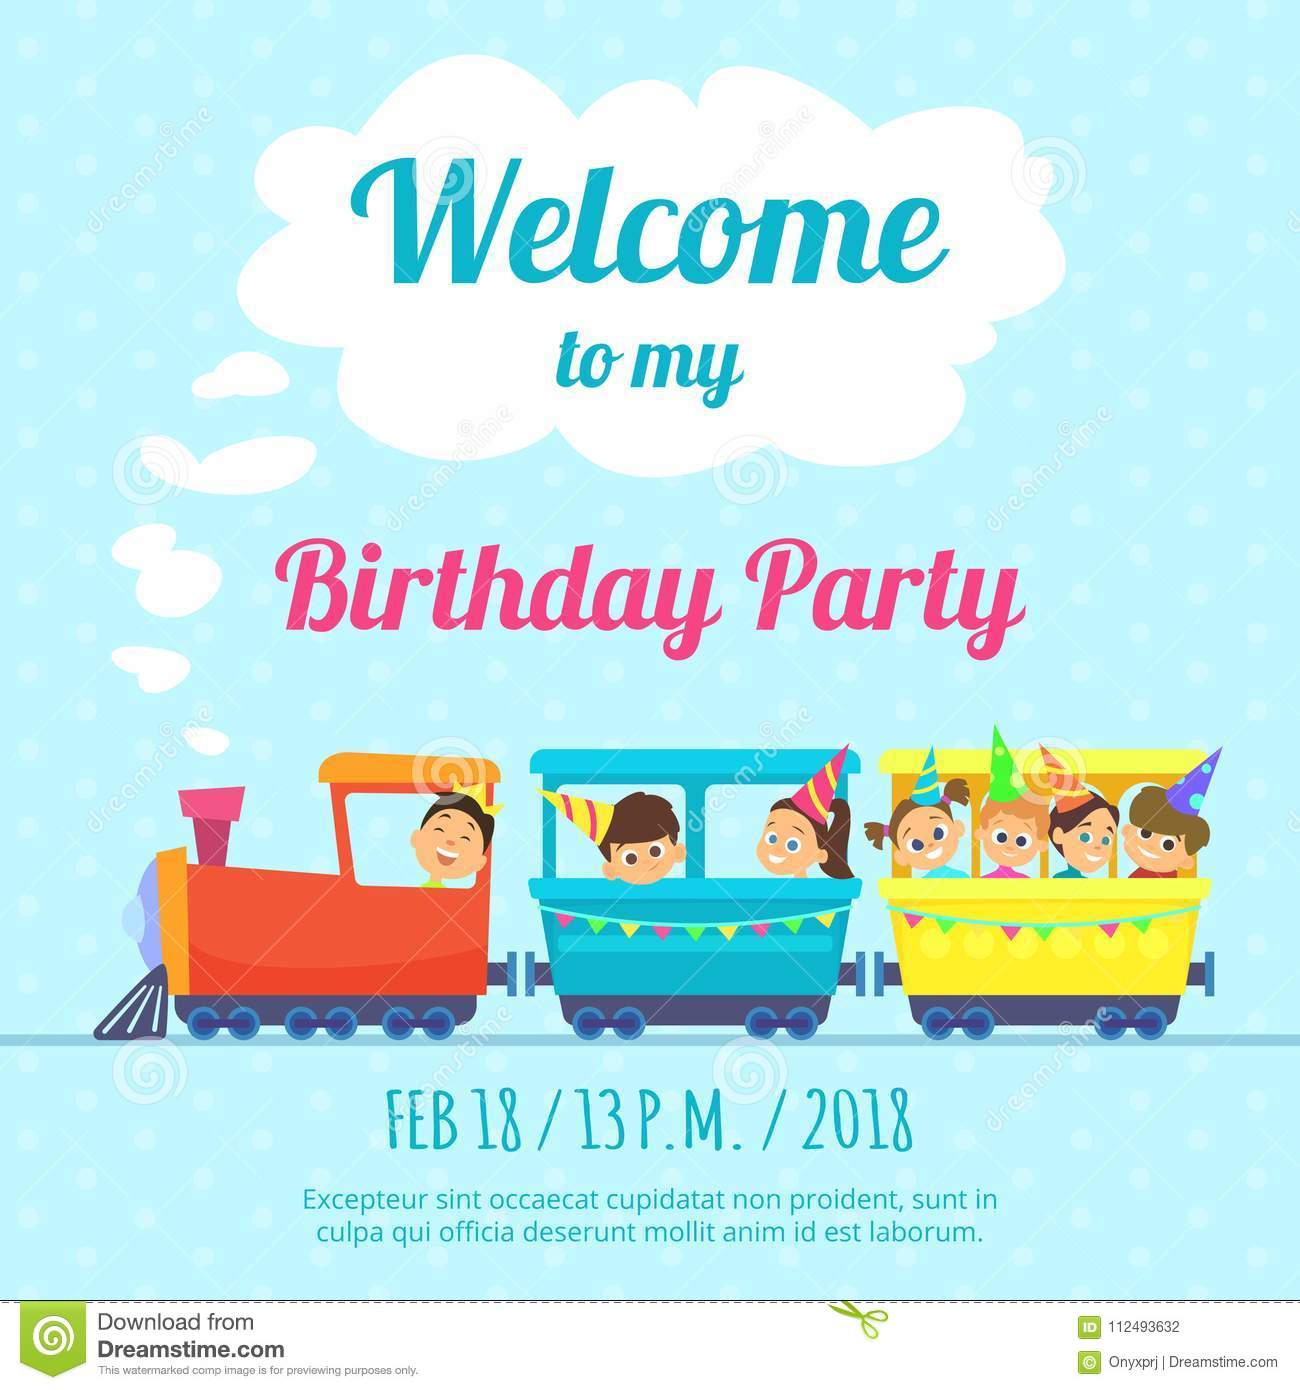 Design Template Of Poster For Kids Party Invitation Illustration Train Toys